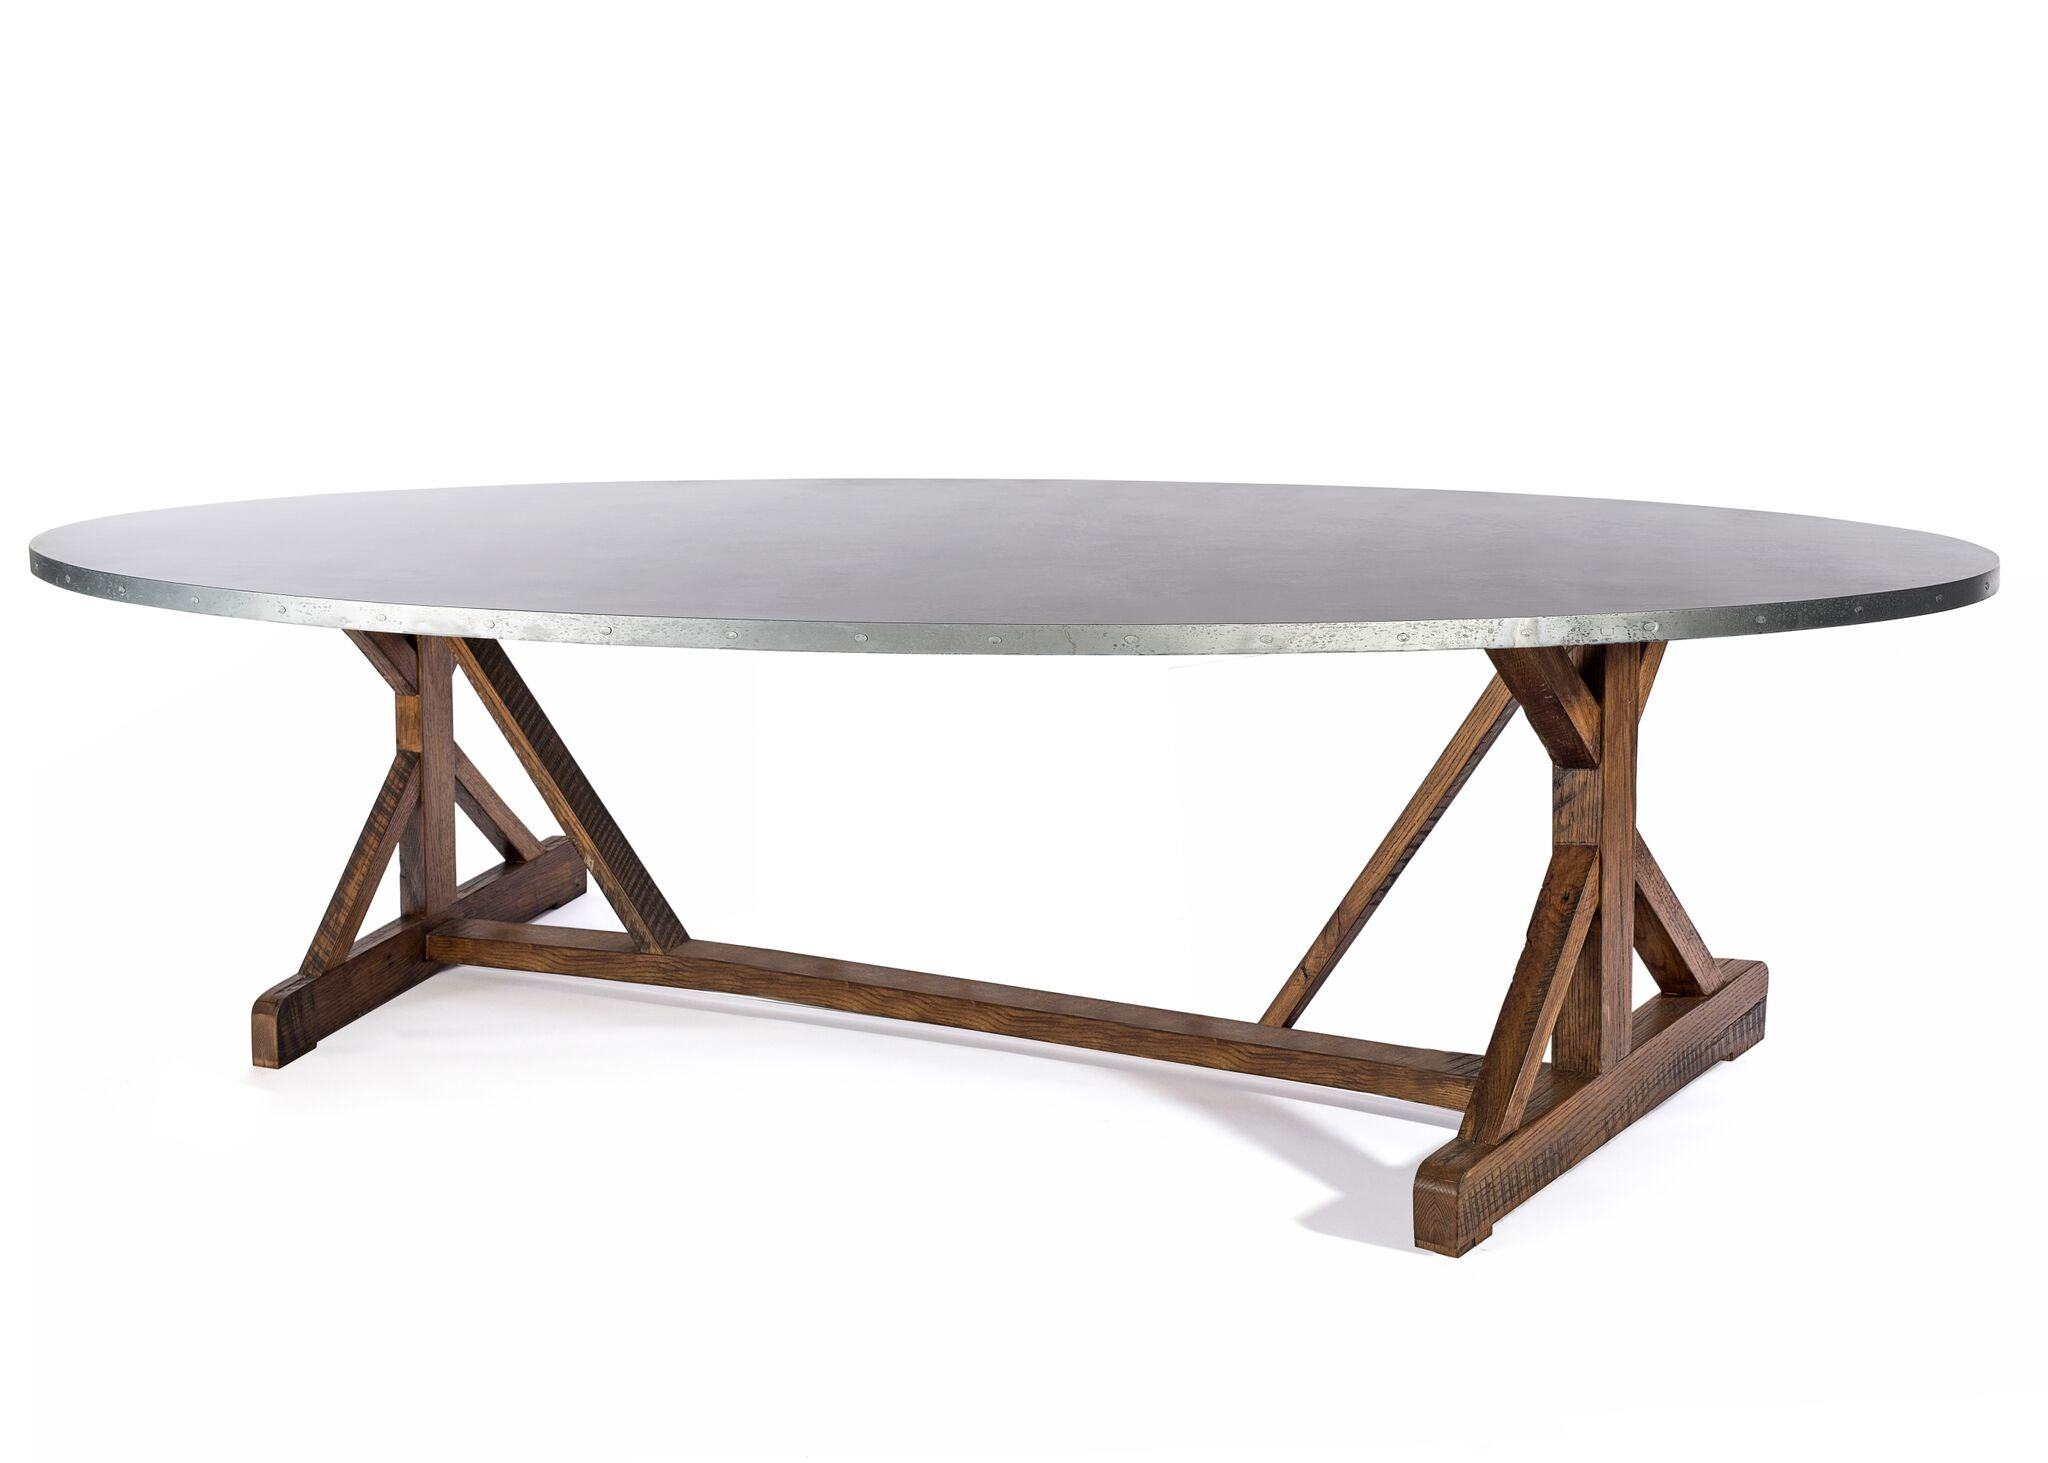 Zinc Oval Tables | French Trestle Table | CLASSIC | Weathered Grey on Reclaimed Oak | CUSTOM SIZE L 72 W 37 H 30 | 2"